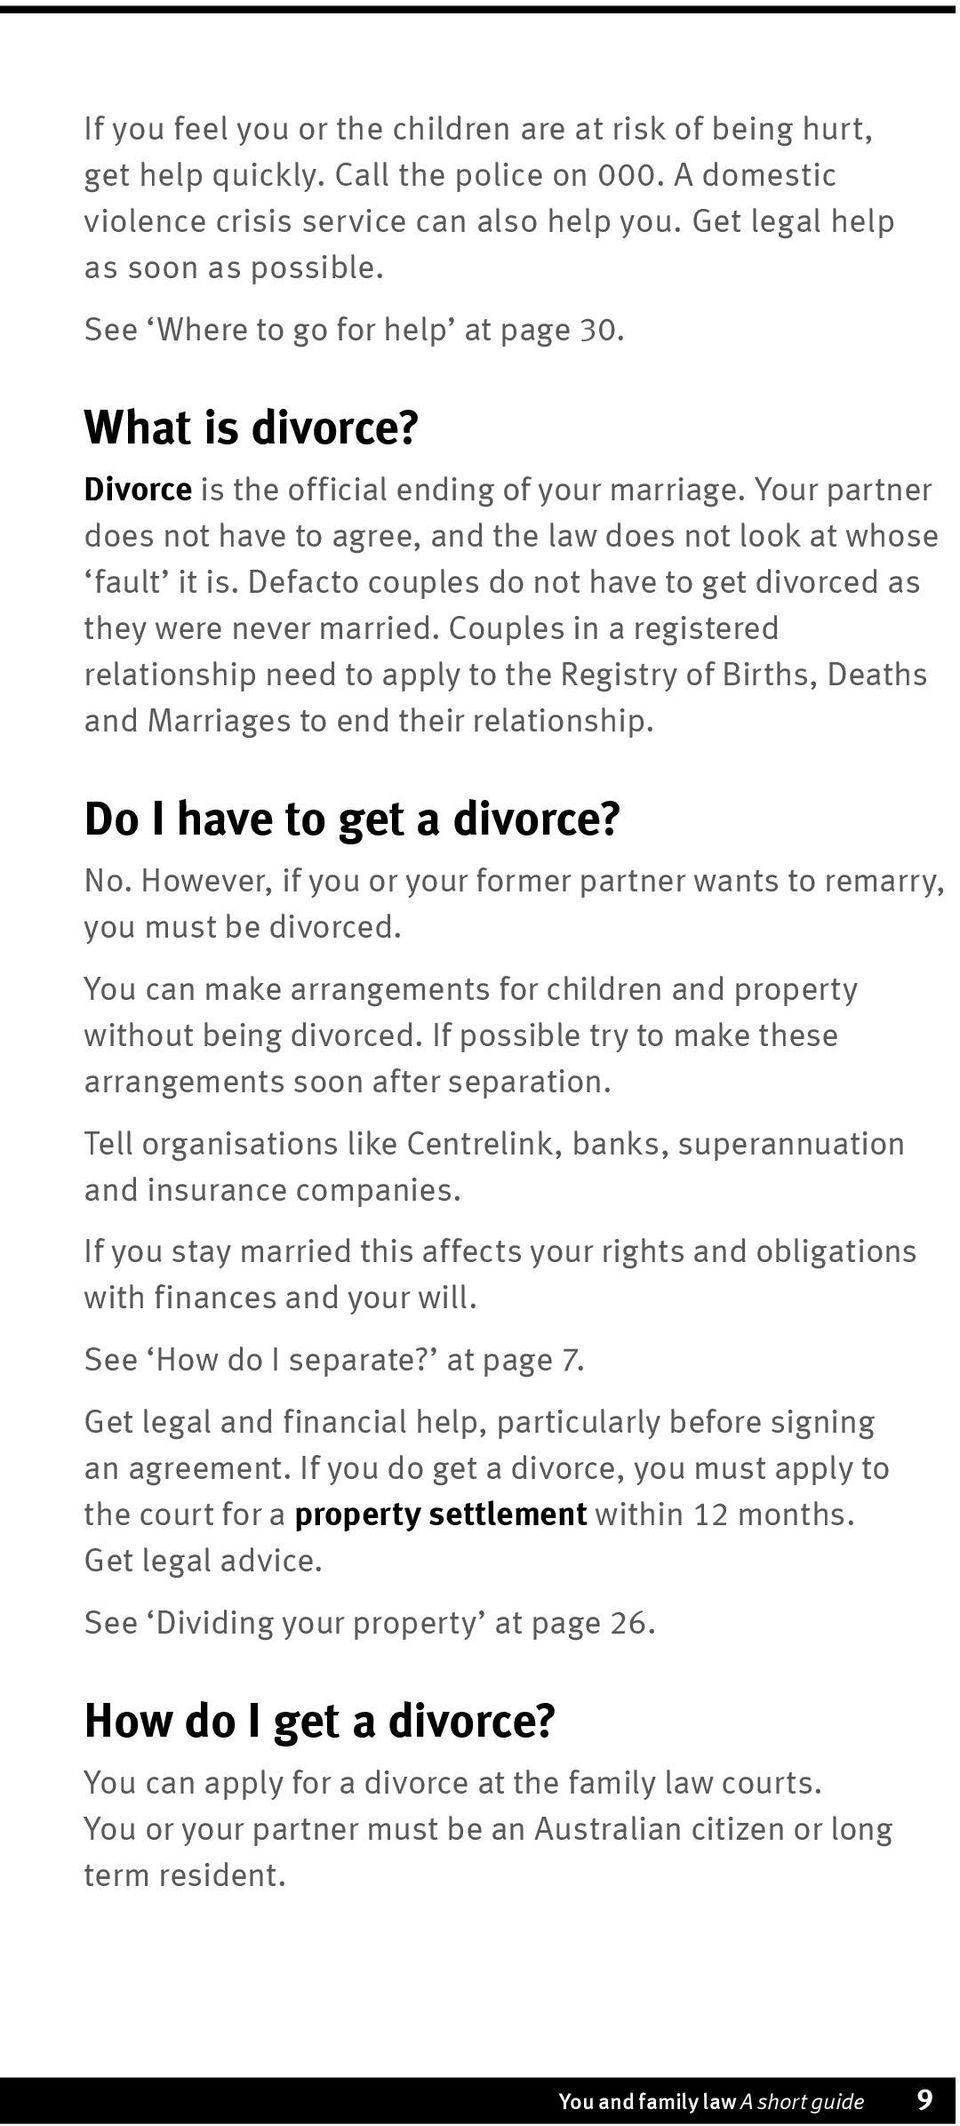 Defacto couples do not have to get divorced as they were never married. Couples in a registered relationship need to apply to the Registry of Births, Deaths and Marriages to end their relationship.